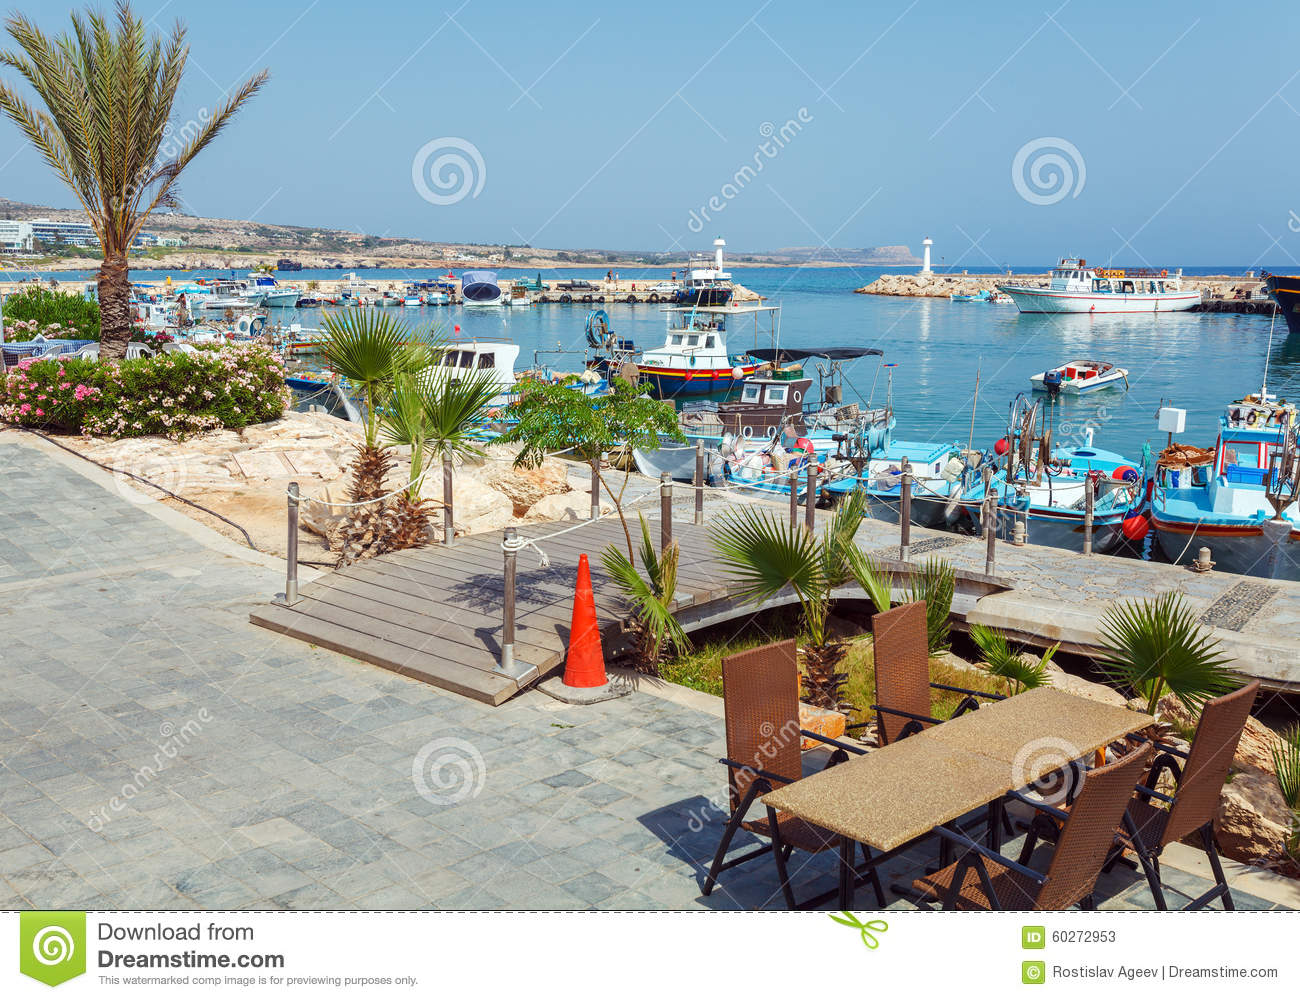 Ayia Napa Cyprus Stock Photos, Images, & Pictures.